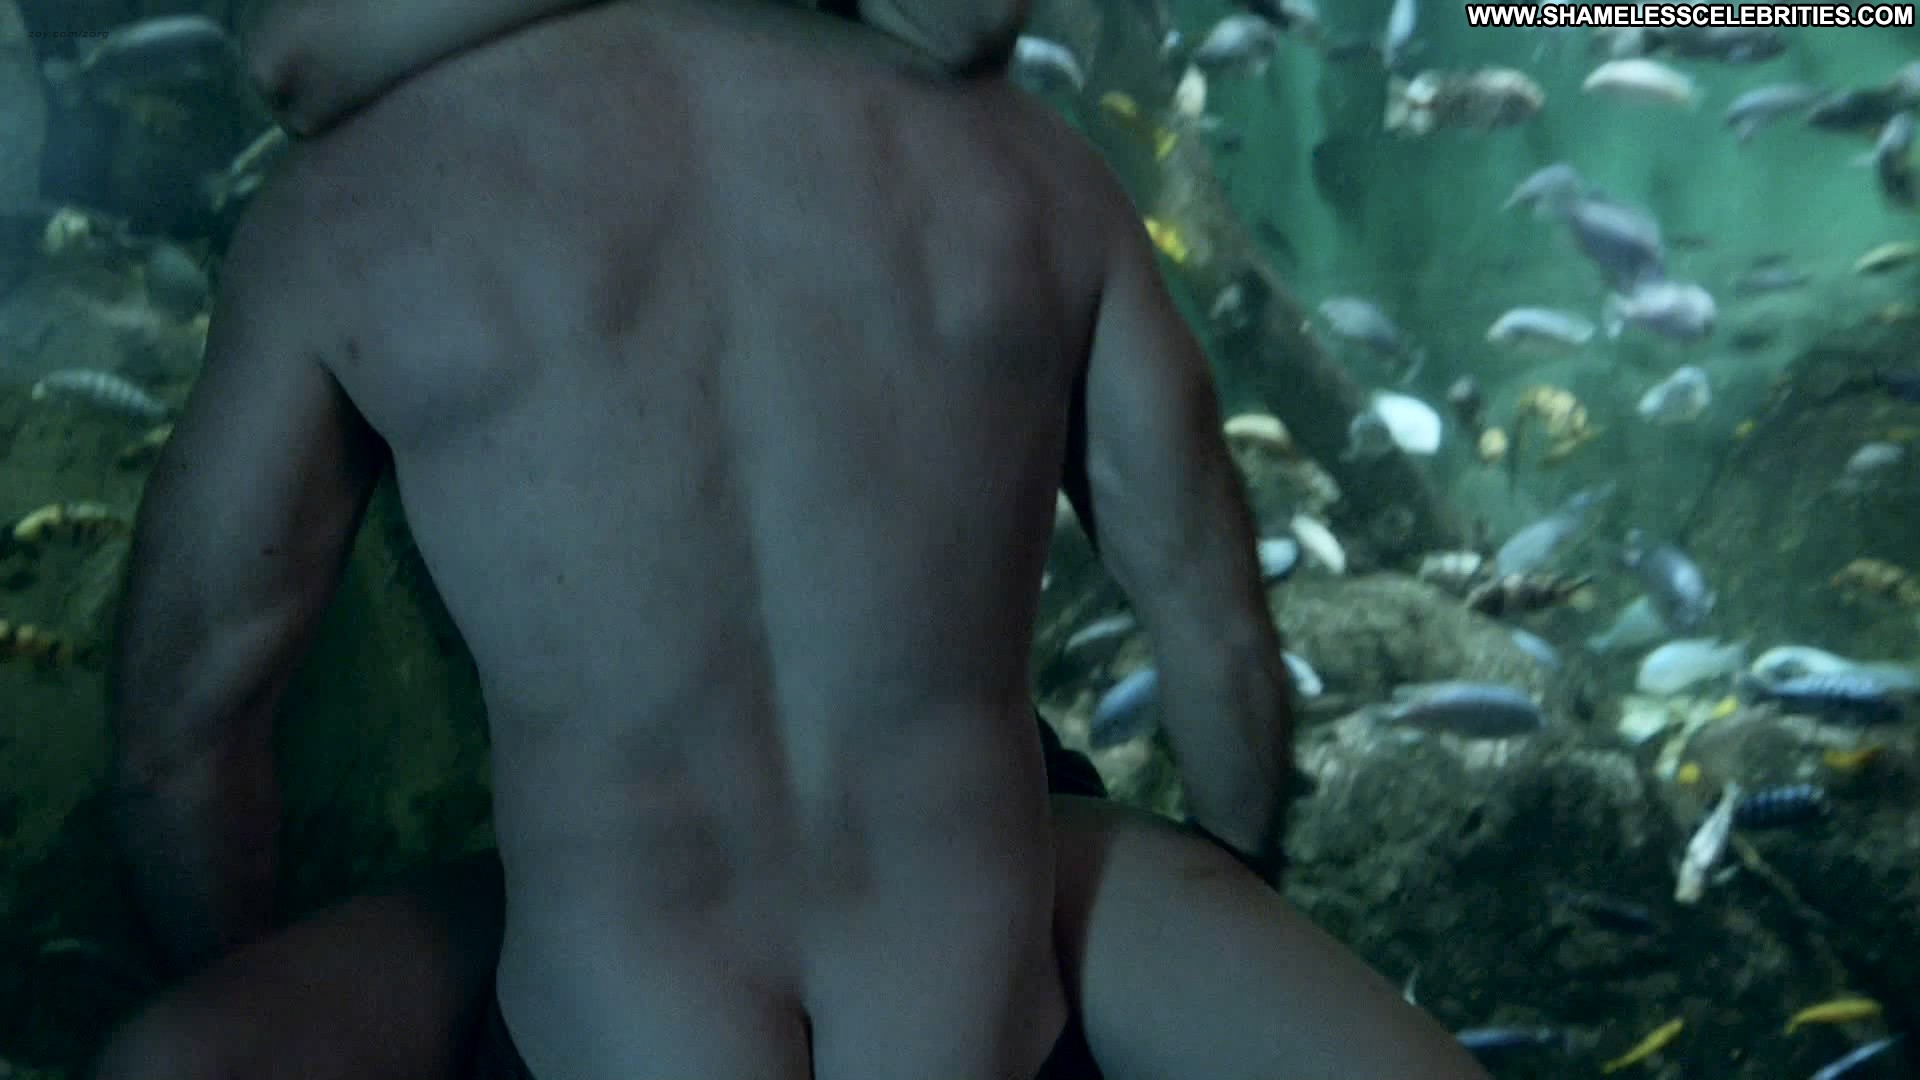 image Emmy rossum sasha alexander and paige diaz tits and ass in sex scenes